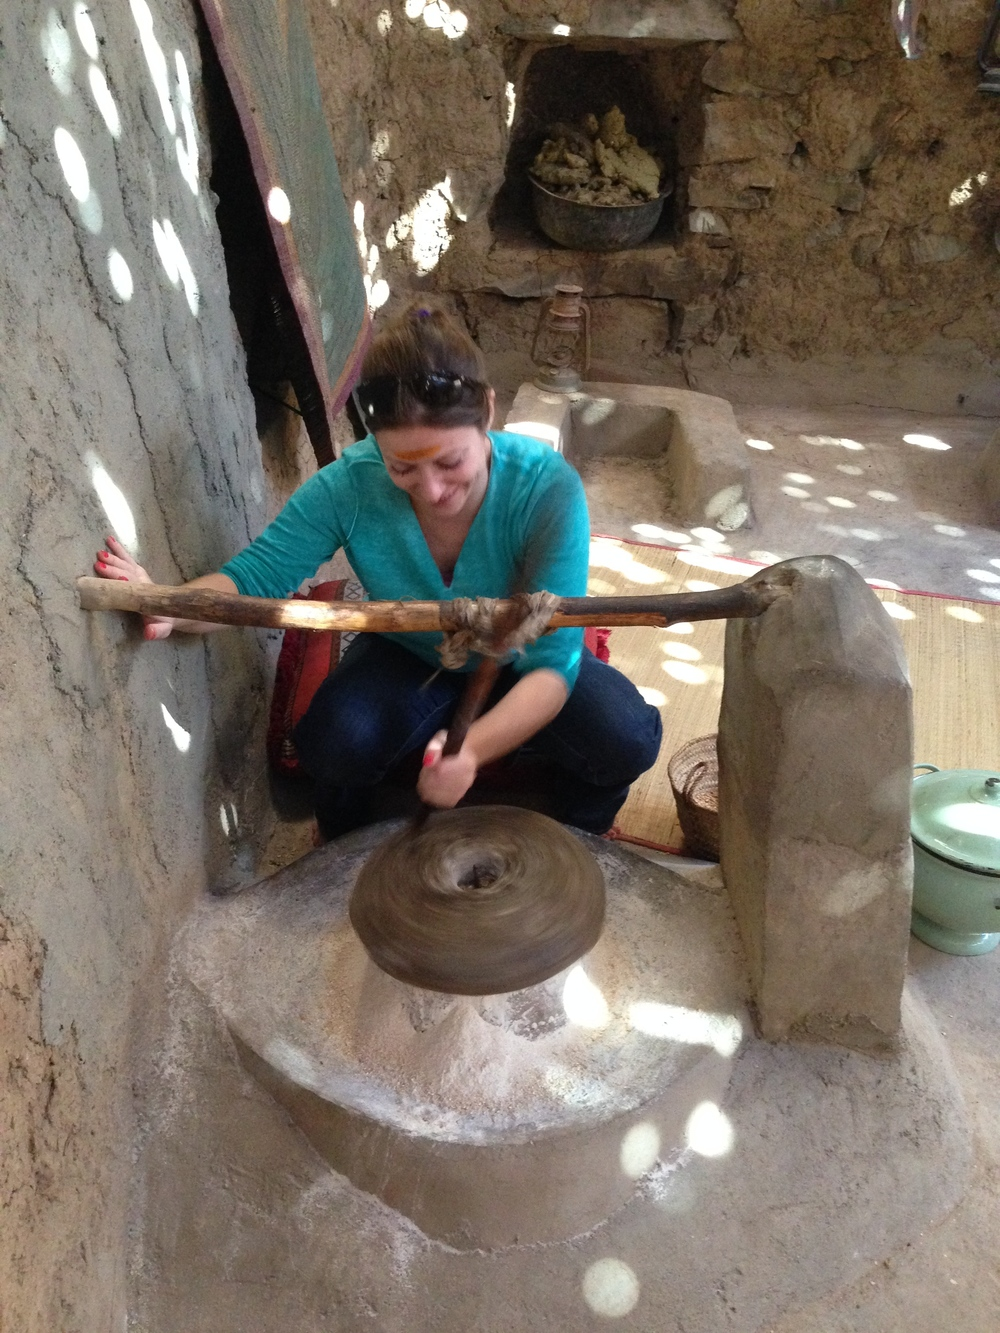 I try the traditional method of grinding grain